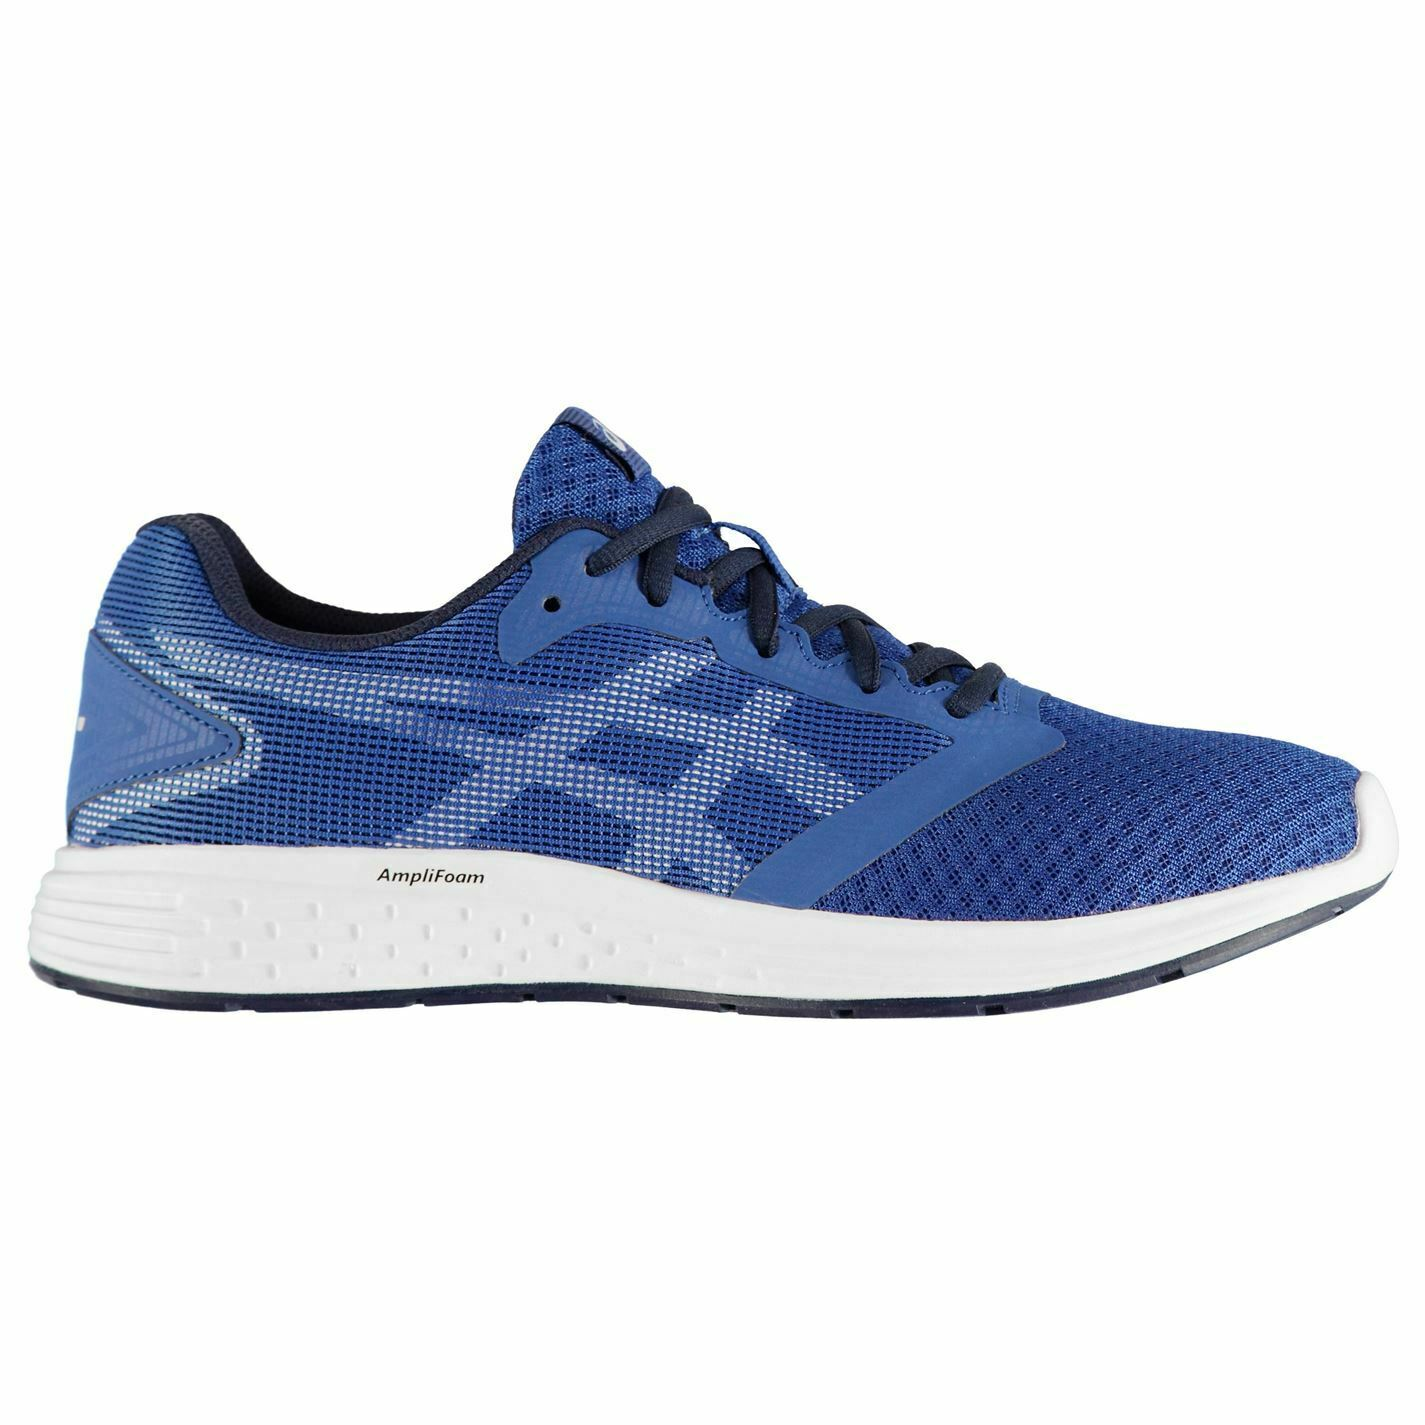 Asics Patriot Sneakers Mens Gents Runners Laces Fastened Mesh Upper